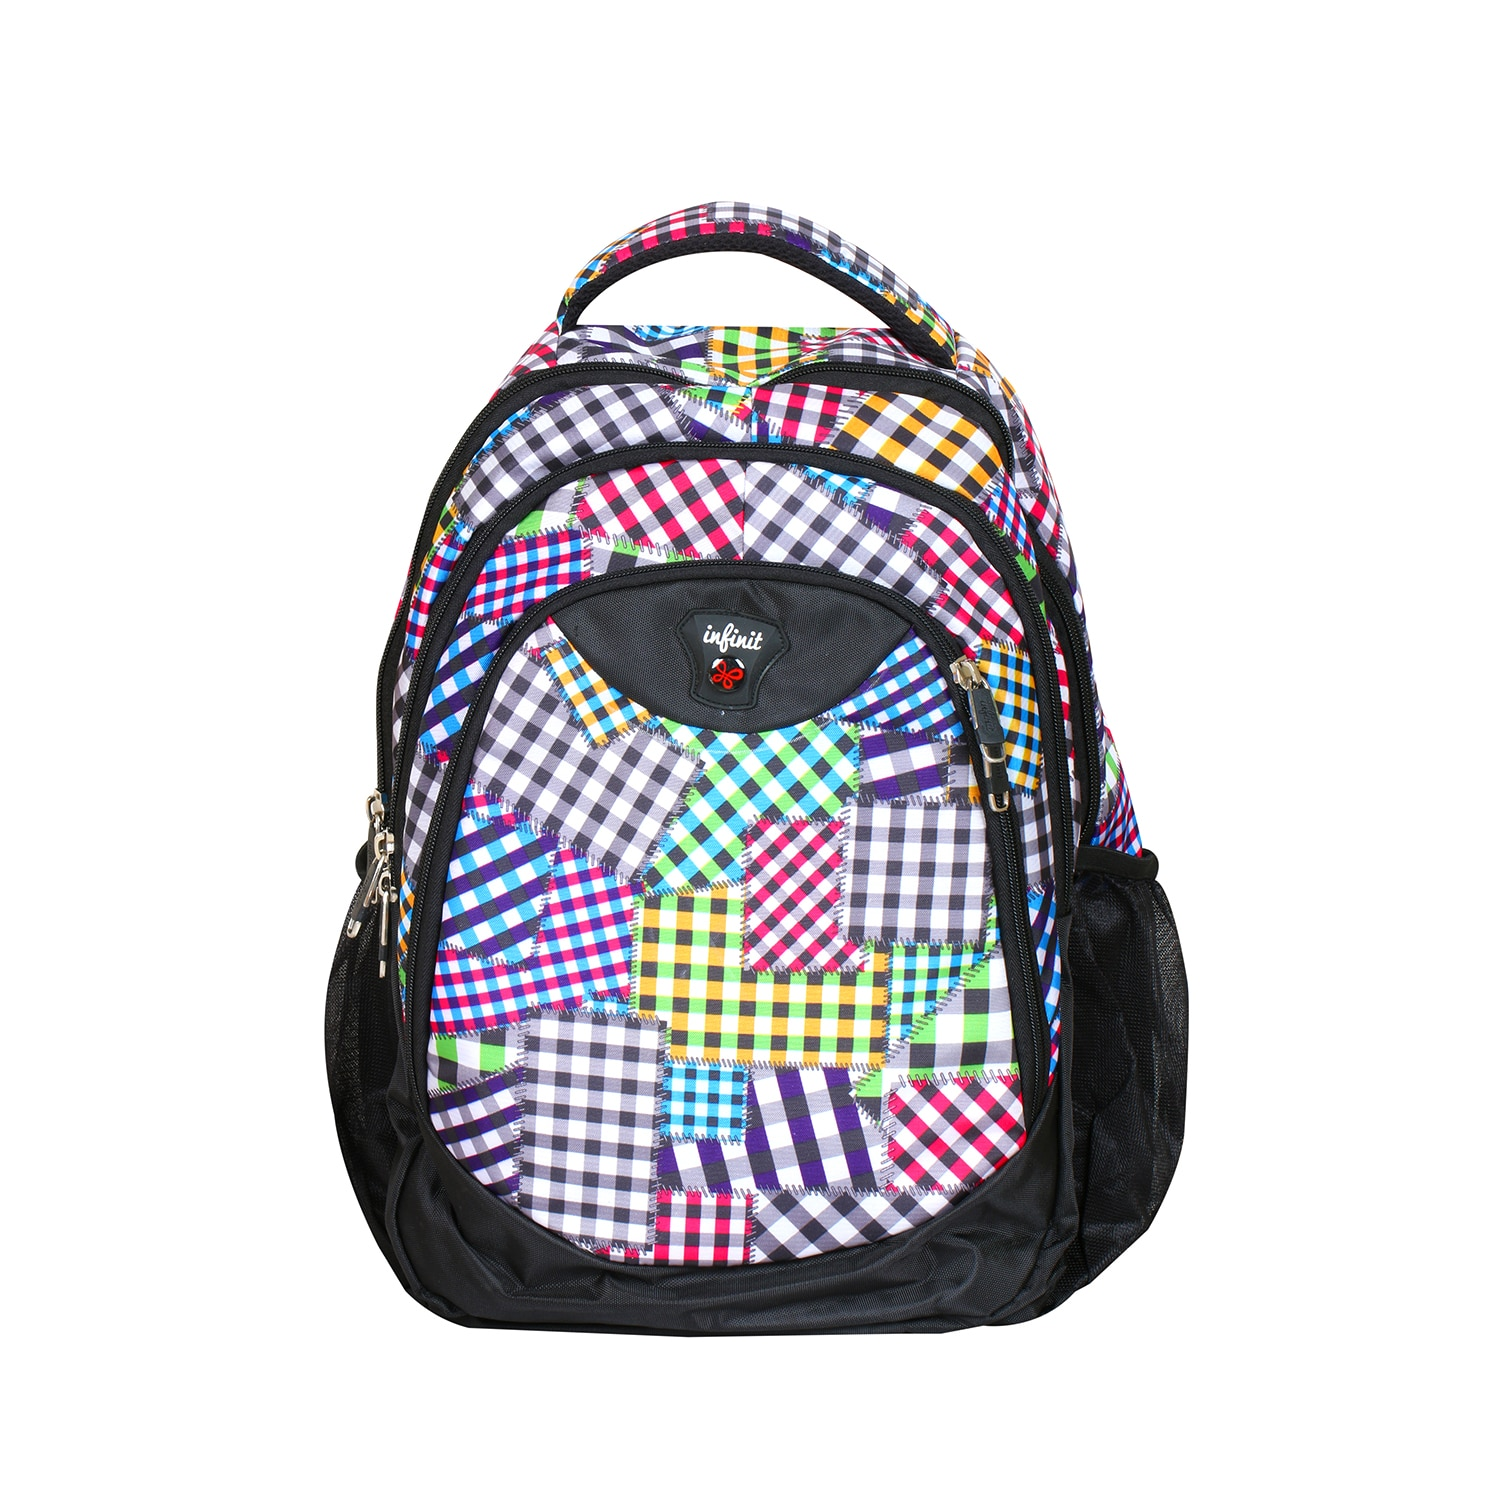 INFINIT BAGS is a leading Manufacturer of Backpack From Ahmedabad, Gujarat, India. we have wide range of different types of Bag and we made as per client's Requirements. we are providing best quality of Products as per your needs. For More Details. Call now:. 8141888809